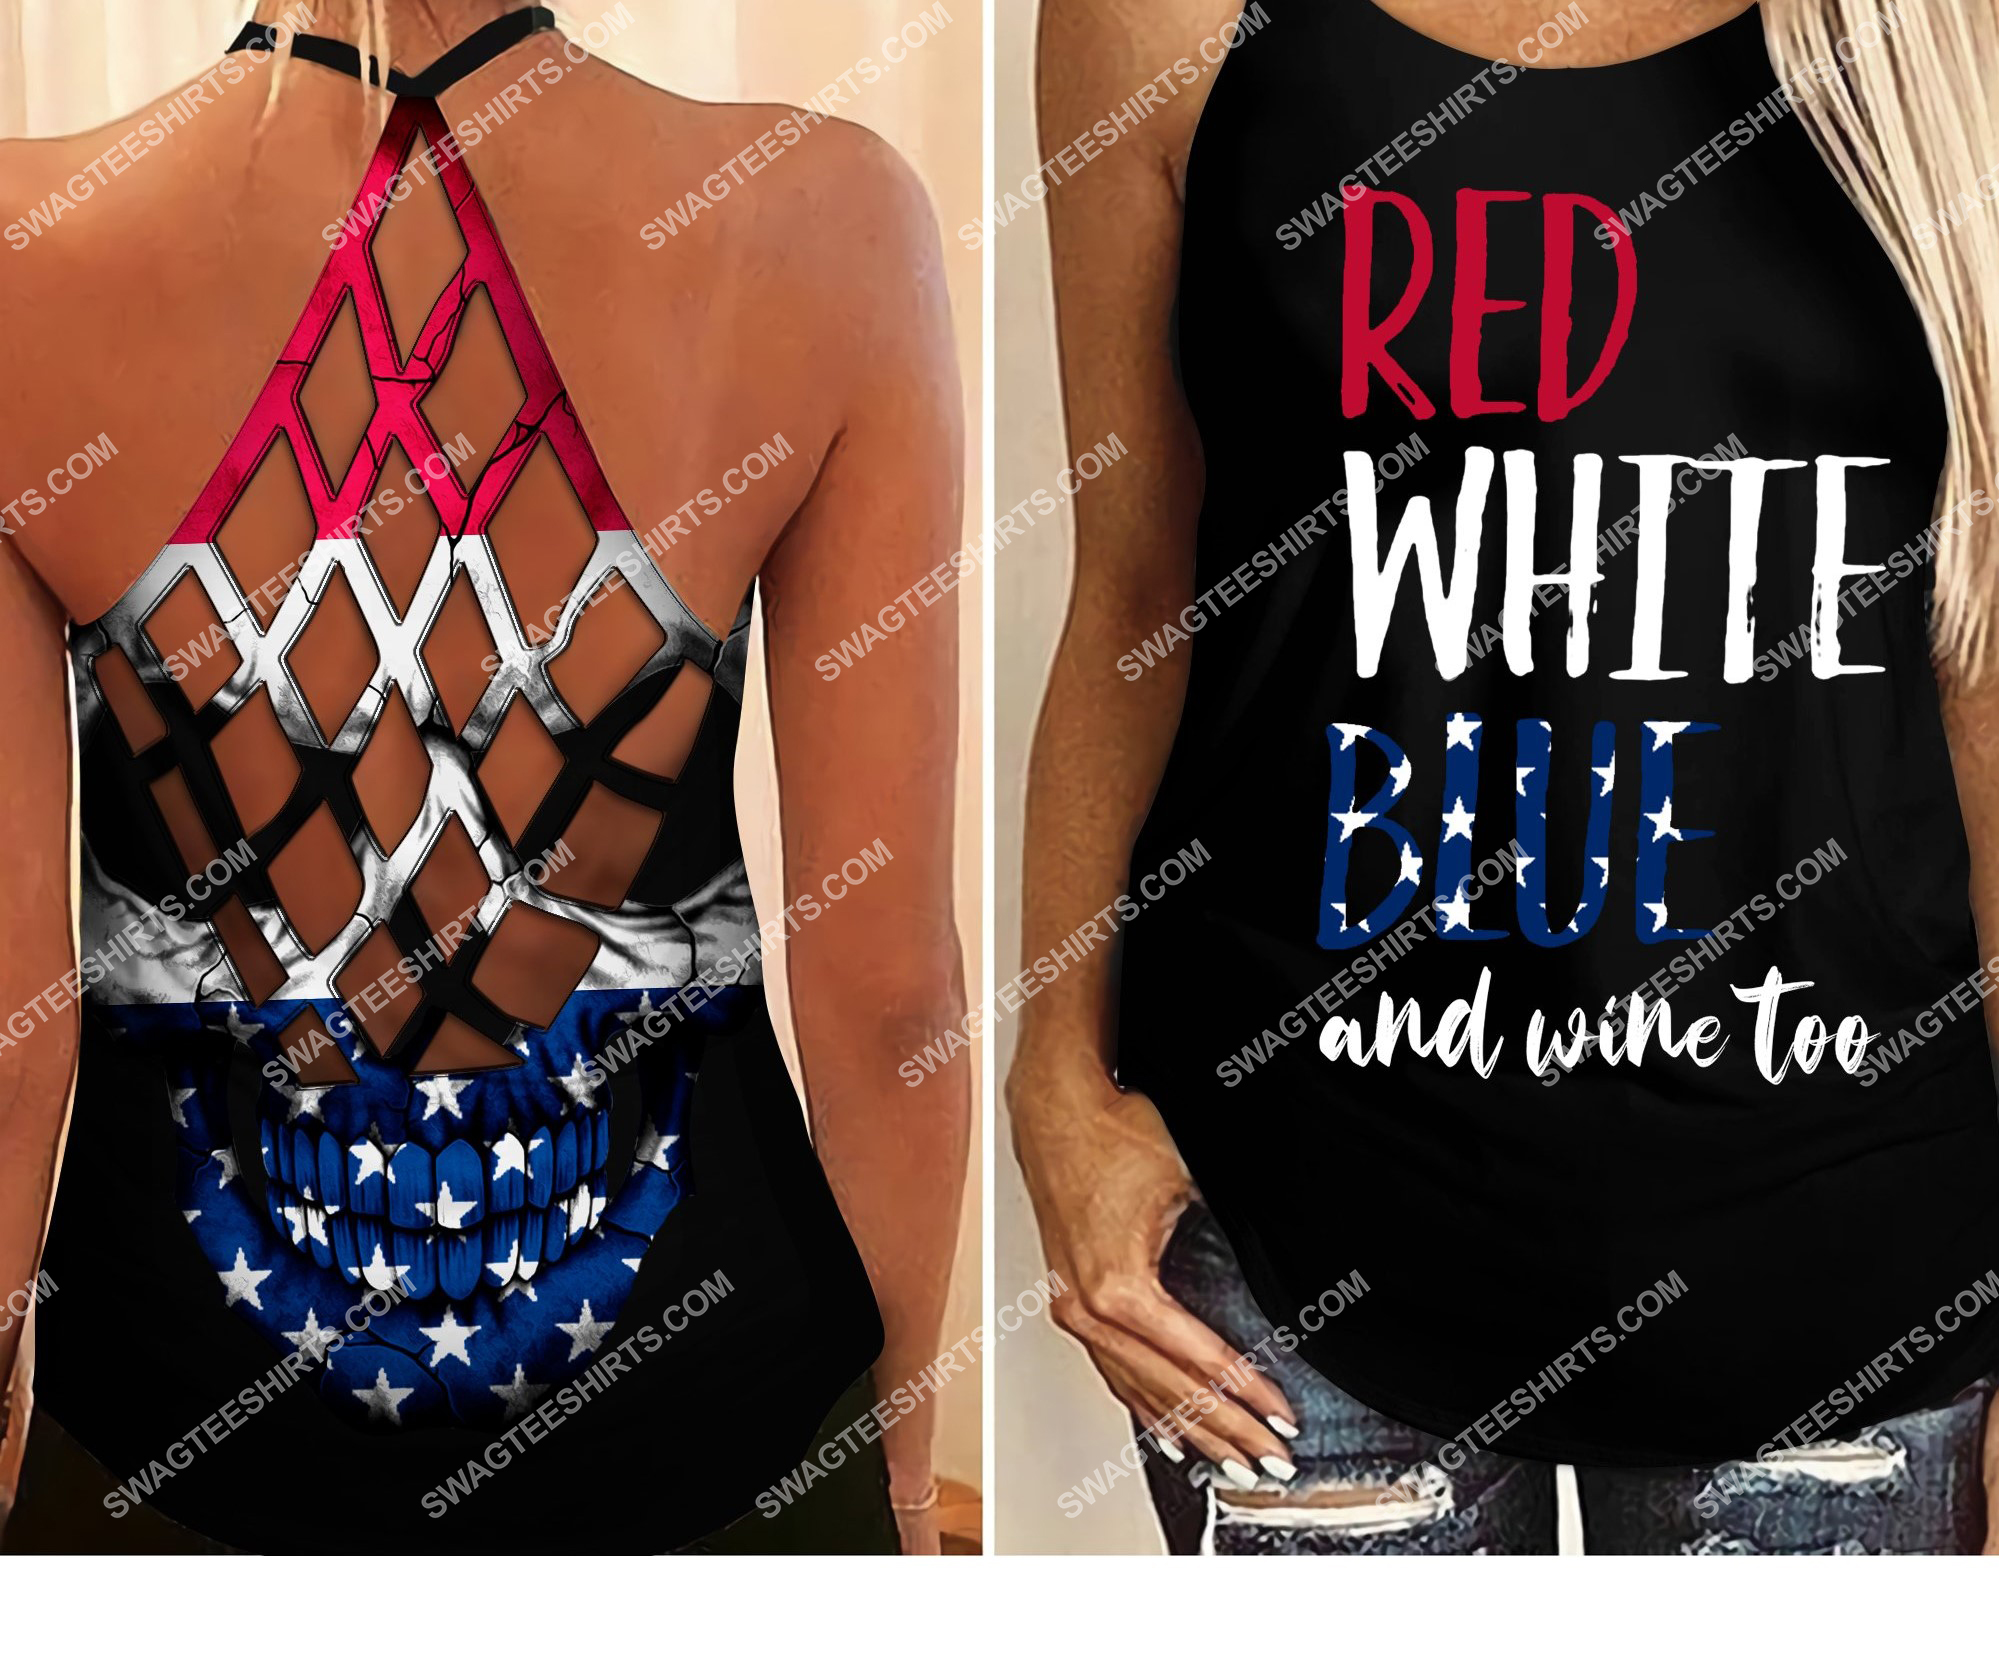 fourth of july red white blue and wine too all over printed strappy back tank top 2 - Copy (2)